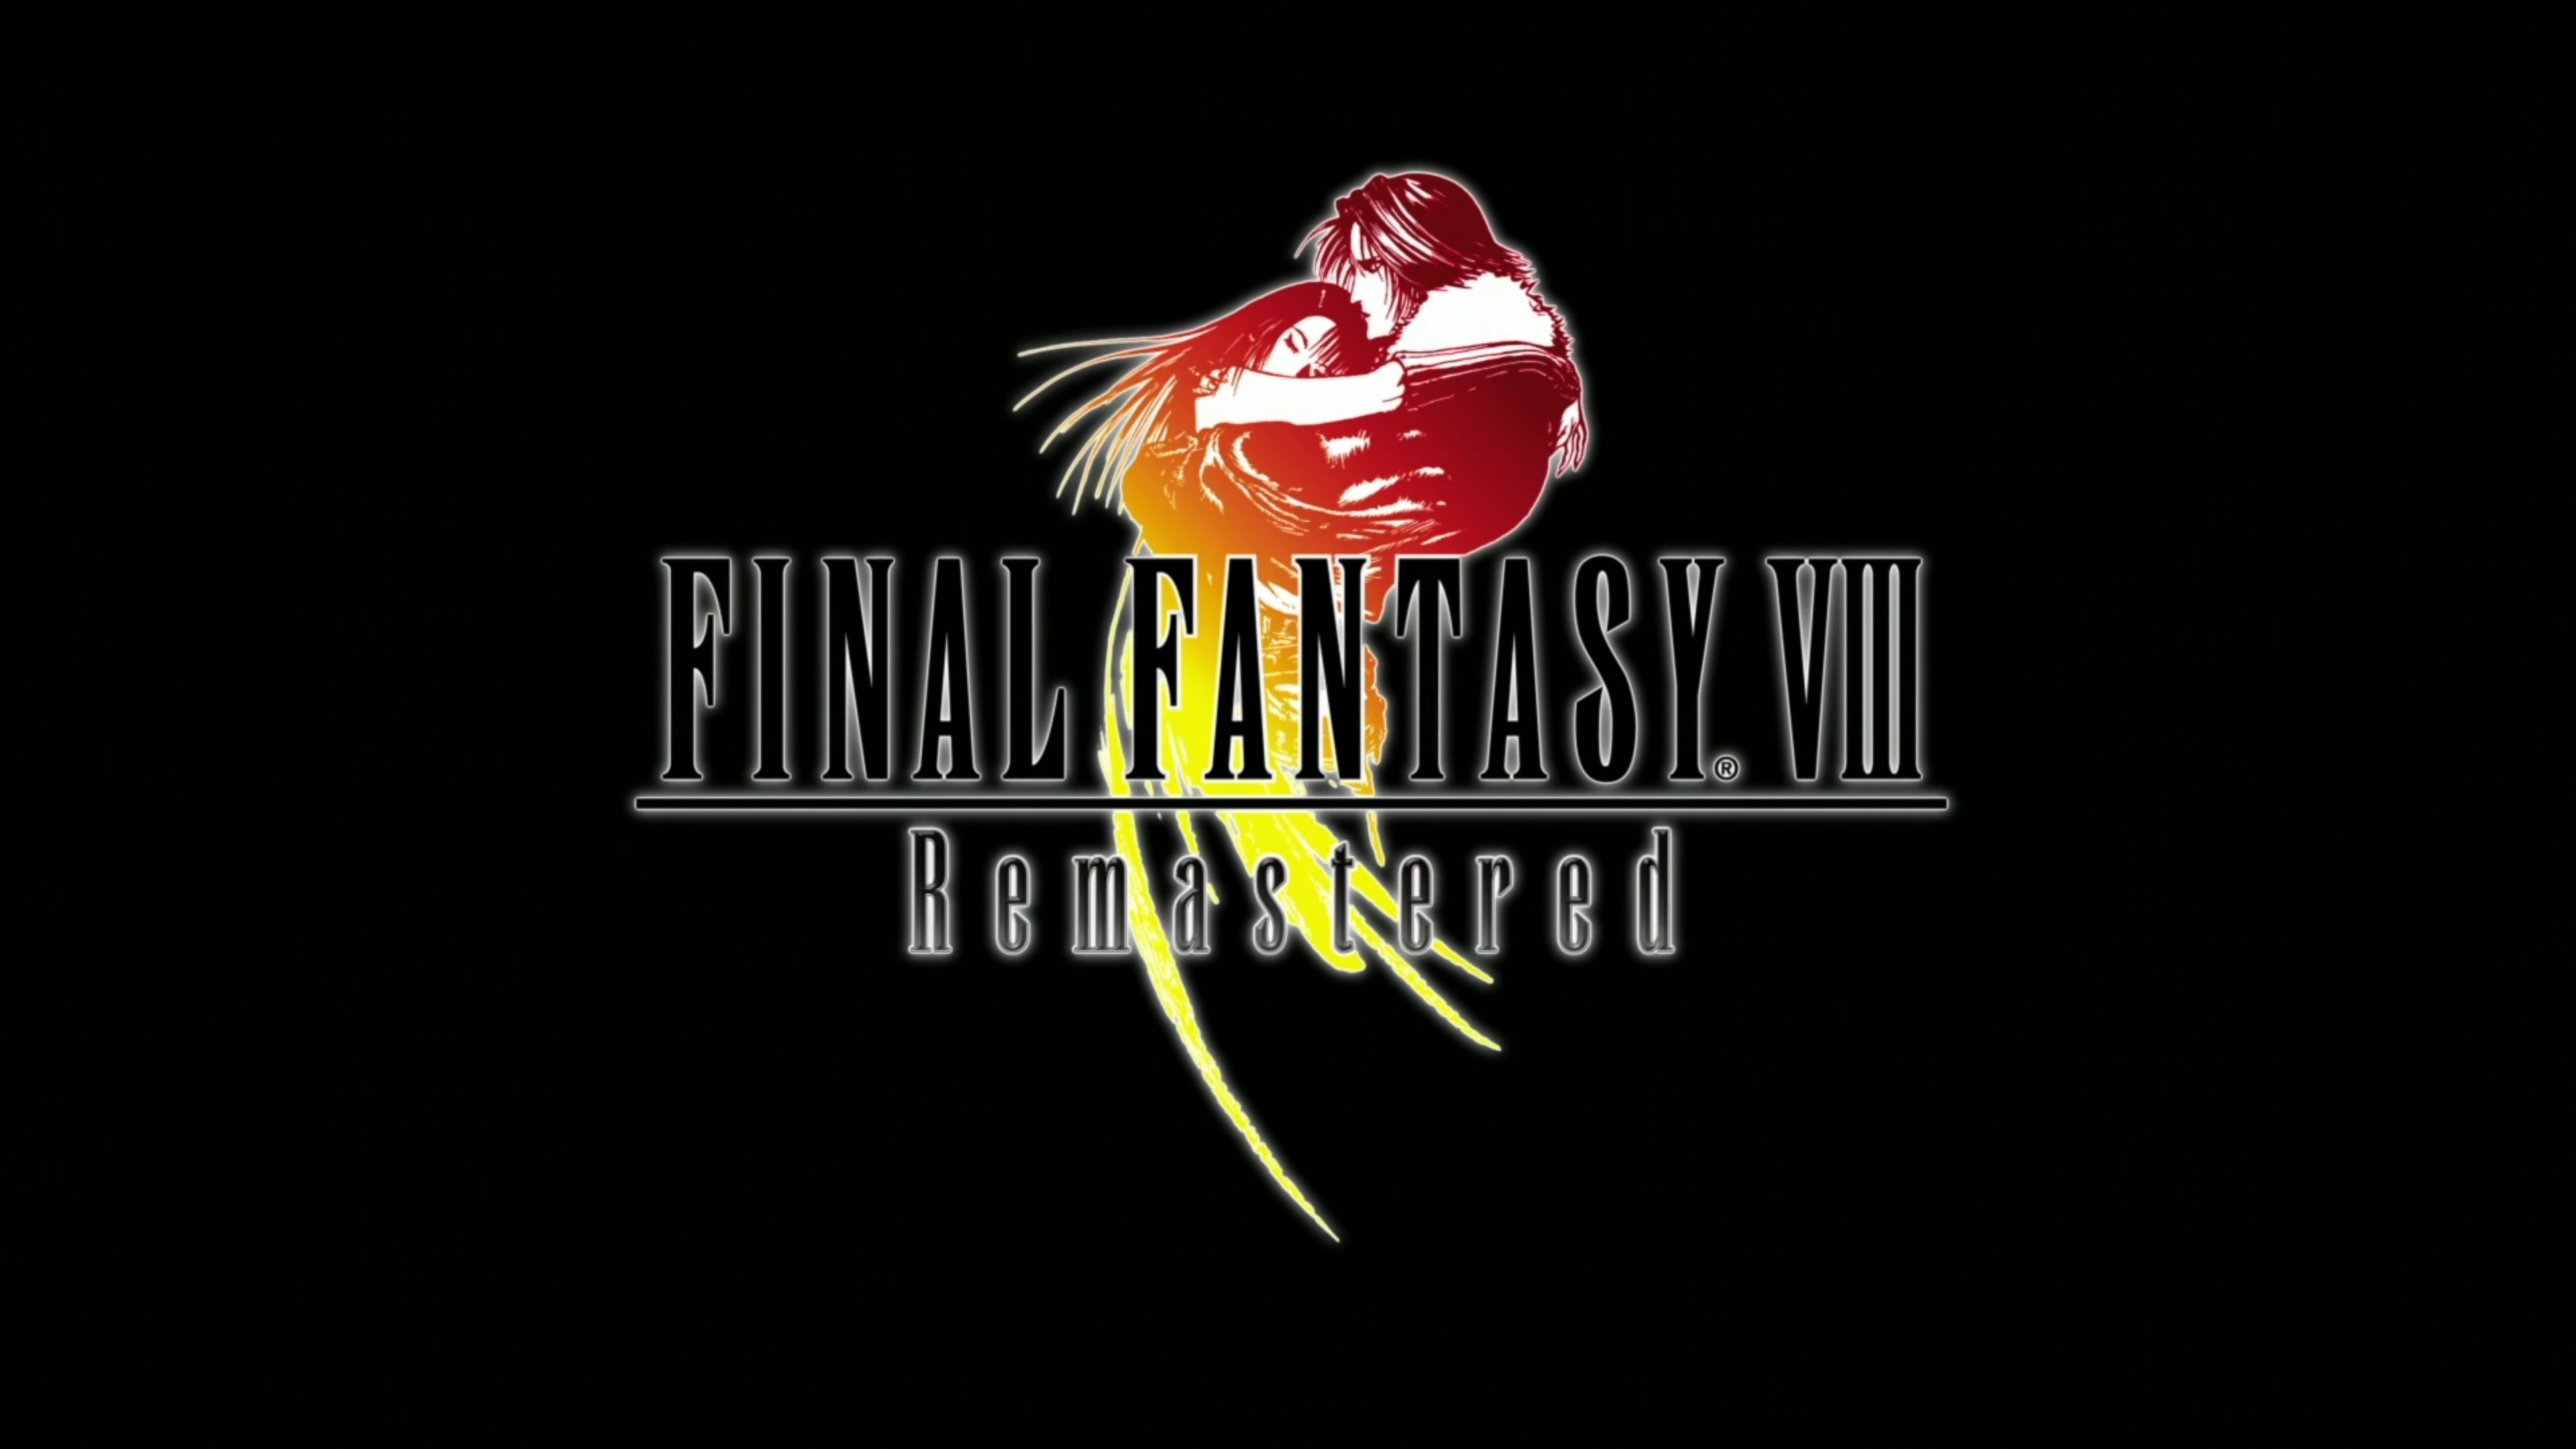 Final Fantasy VIII Remastered will be digital-only after all